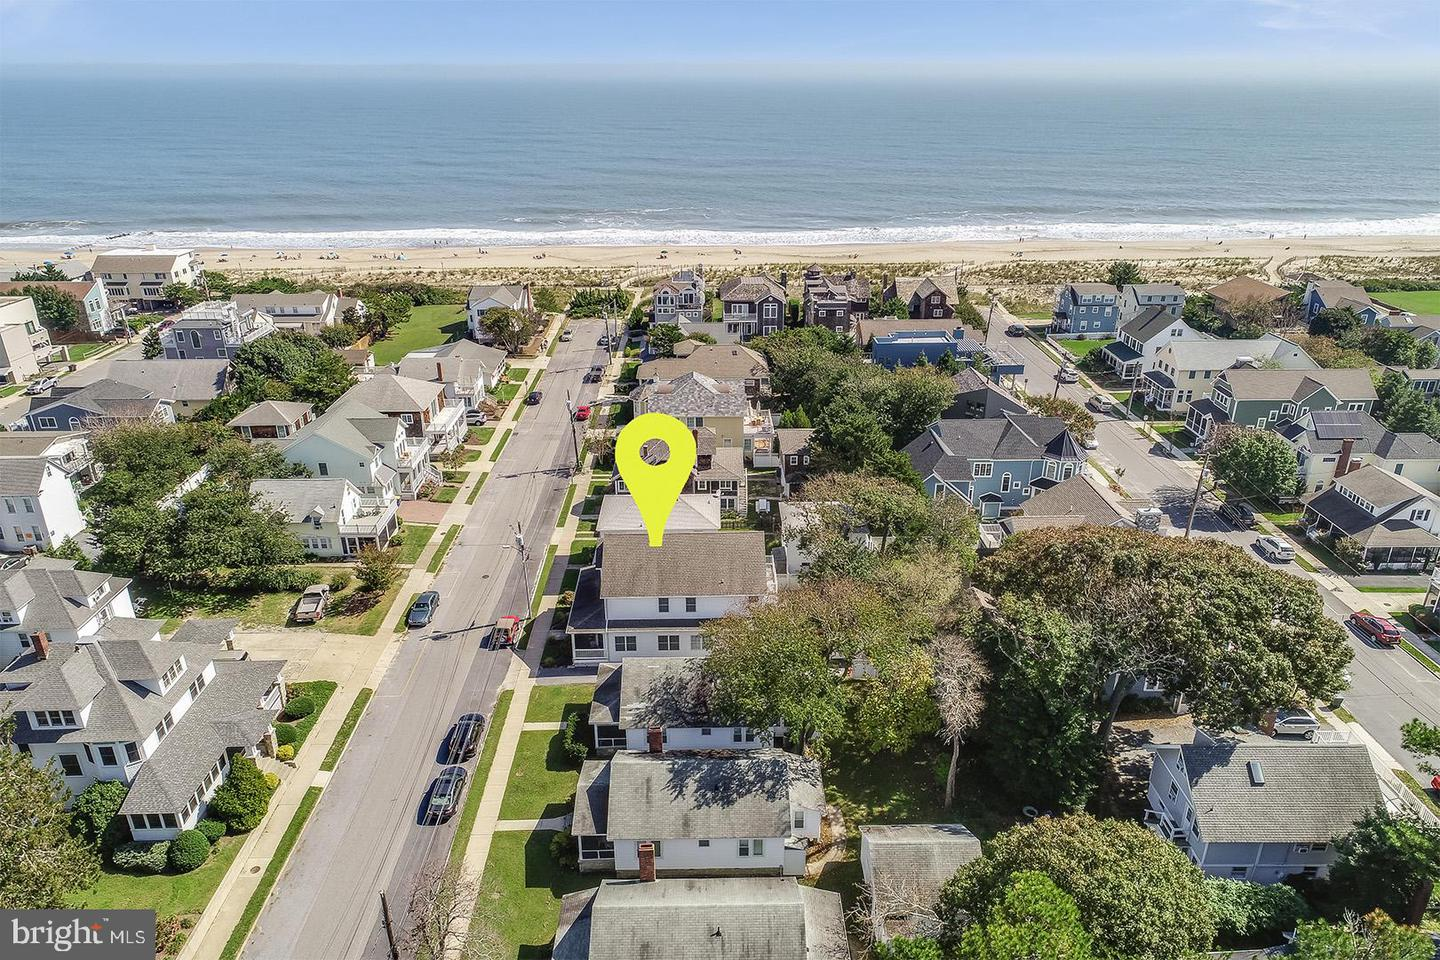 DESU139874-301711162840-2019-05-16-07-32-35 10 New Castle St | Rehoboth Beach, DE Real Estate For Sale | MLS# Desu139874  - Rehoboth Beach Real Estate - Bryce Lingo and Shaun Tull REALTORS, Rehoboth Beach, Delaware